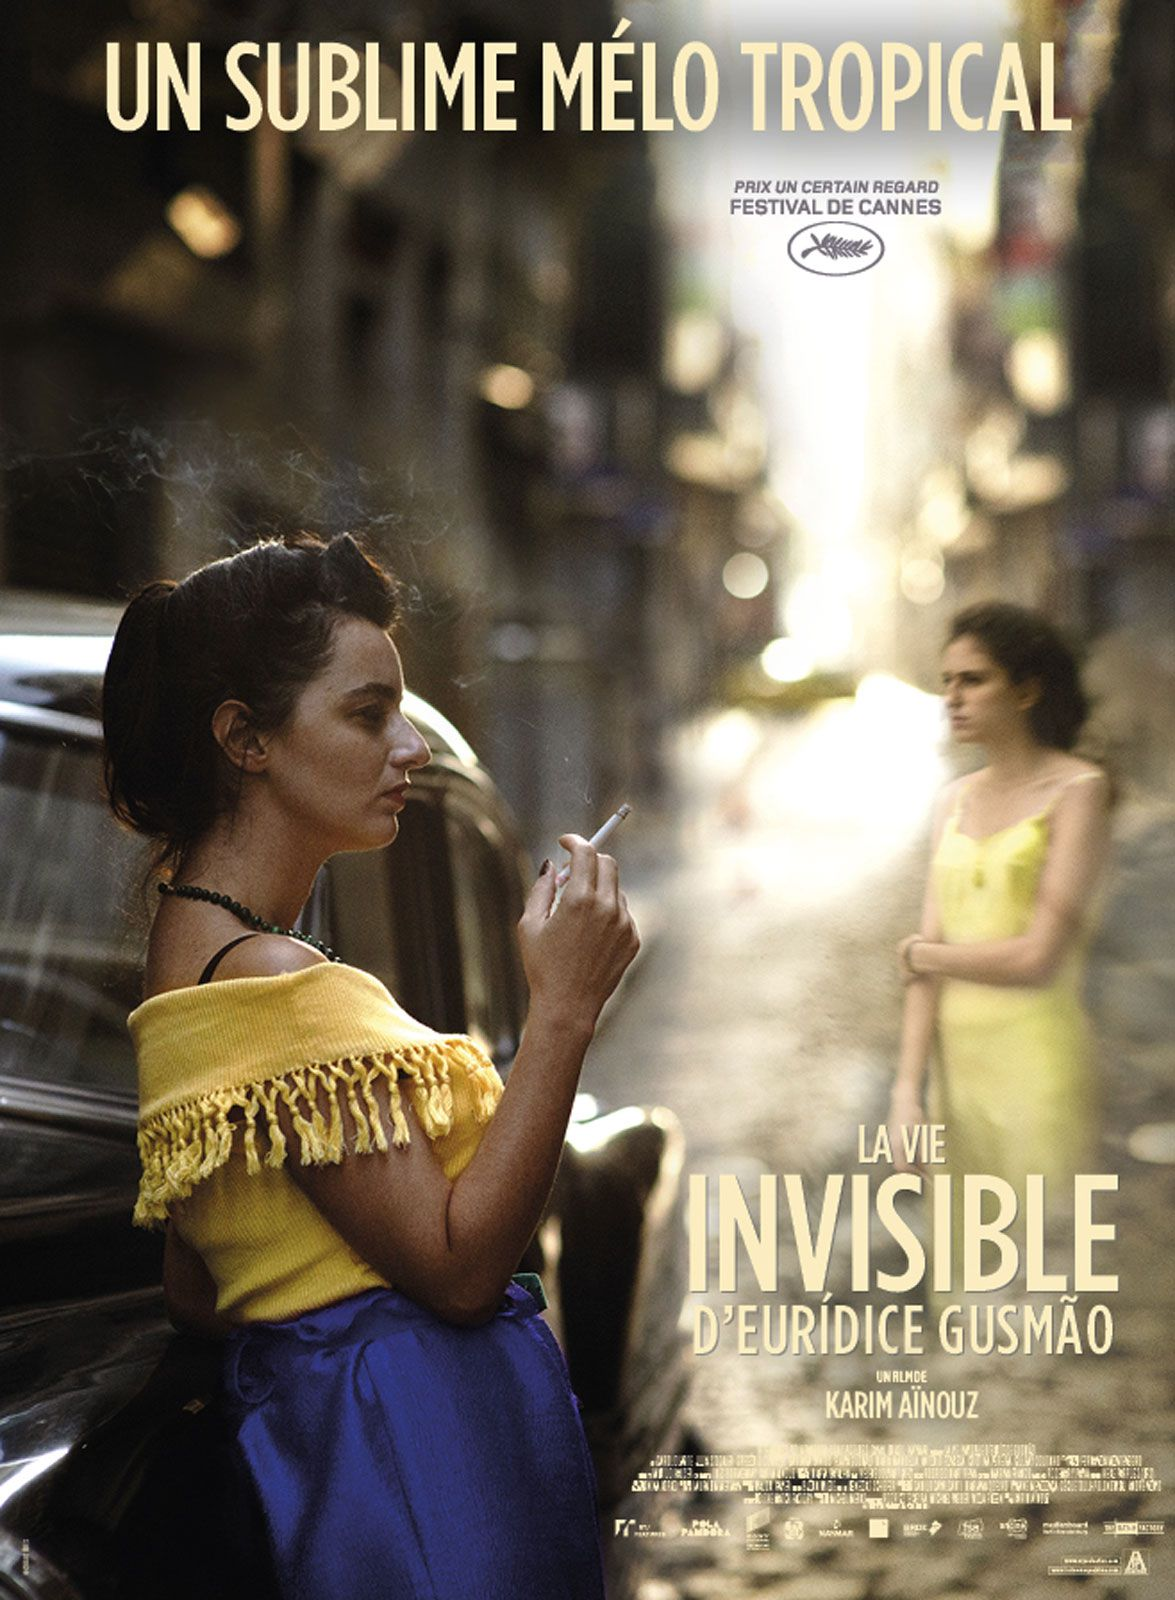 La Vie invisible d'Euridice Gusmão - Film (2019) streaming VF gratuit complet